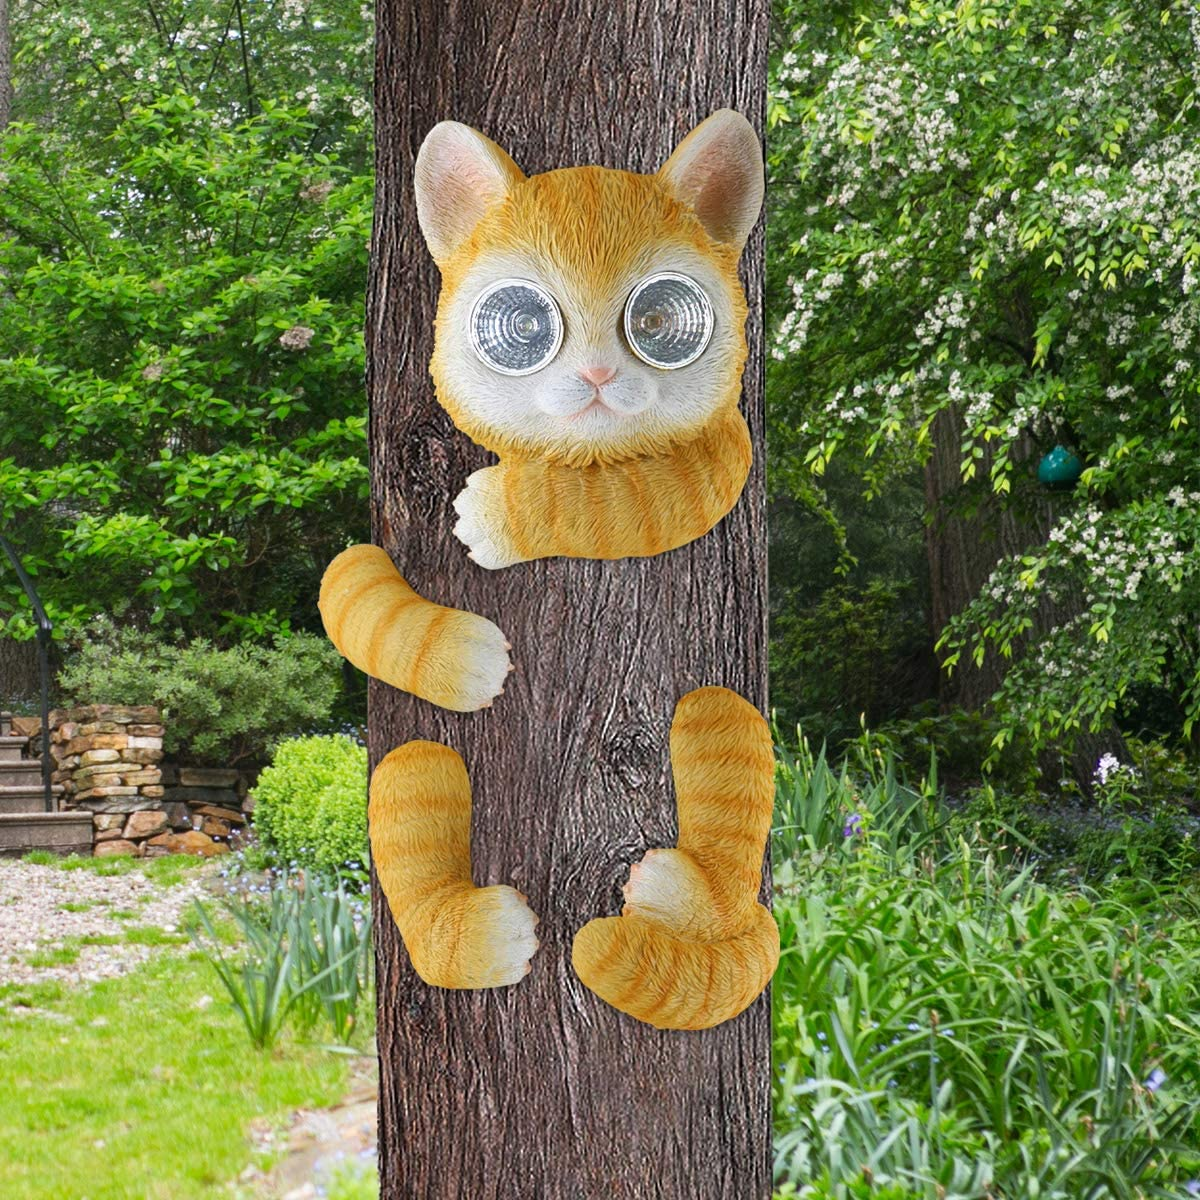 LIMEIDE Upgraded Big Size Tree Hugger/Peeker/Sculpture Art Decor/Decoration Whimsical Solar Light Orange Cat for Garden Yard Outdoor